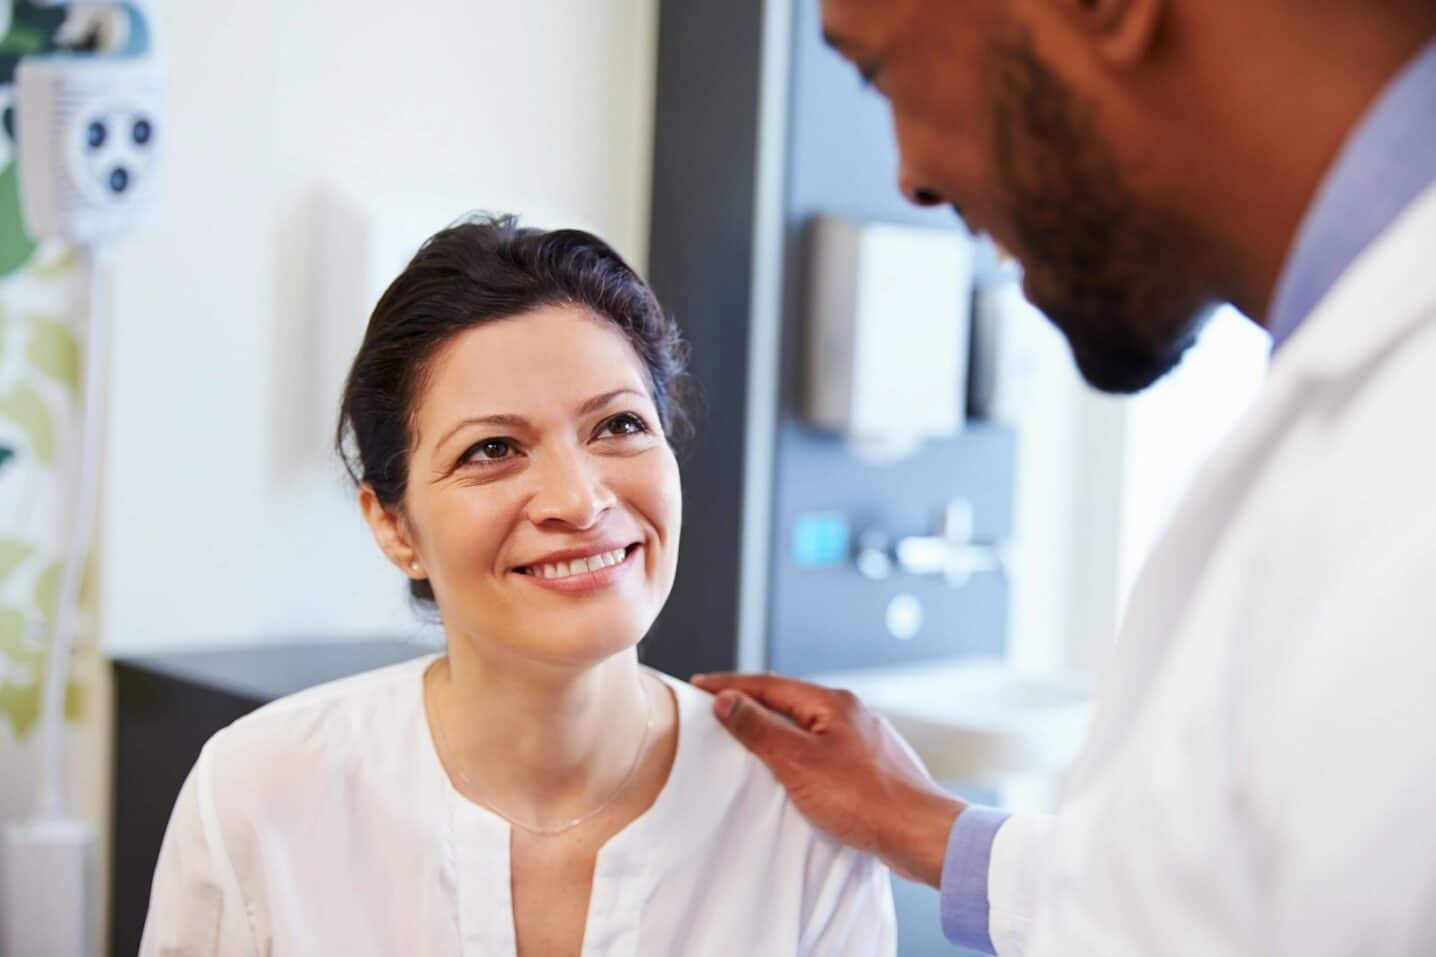 A male doctor is consoling a female patient about insurance in a doctor's office